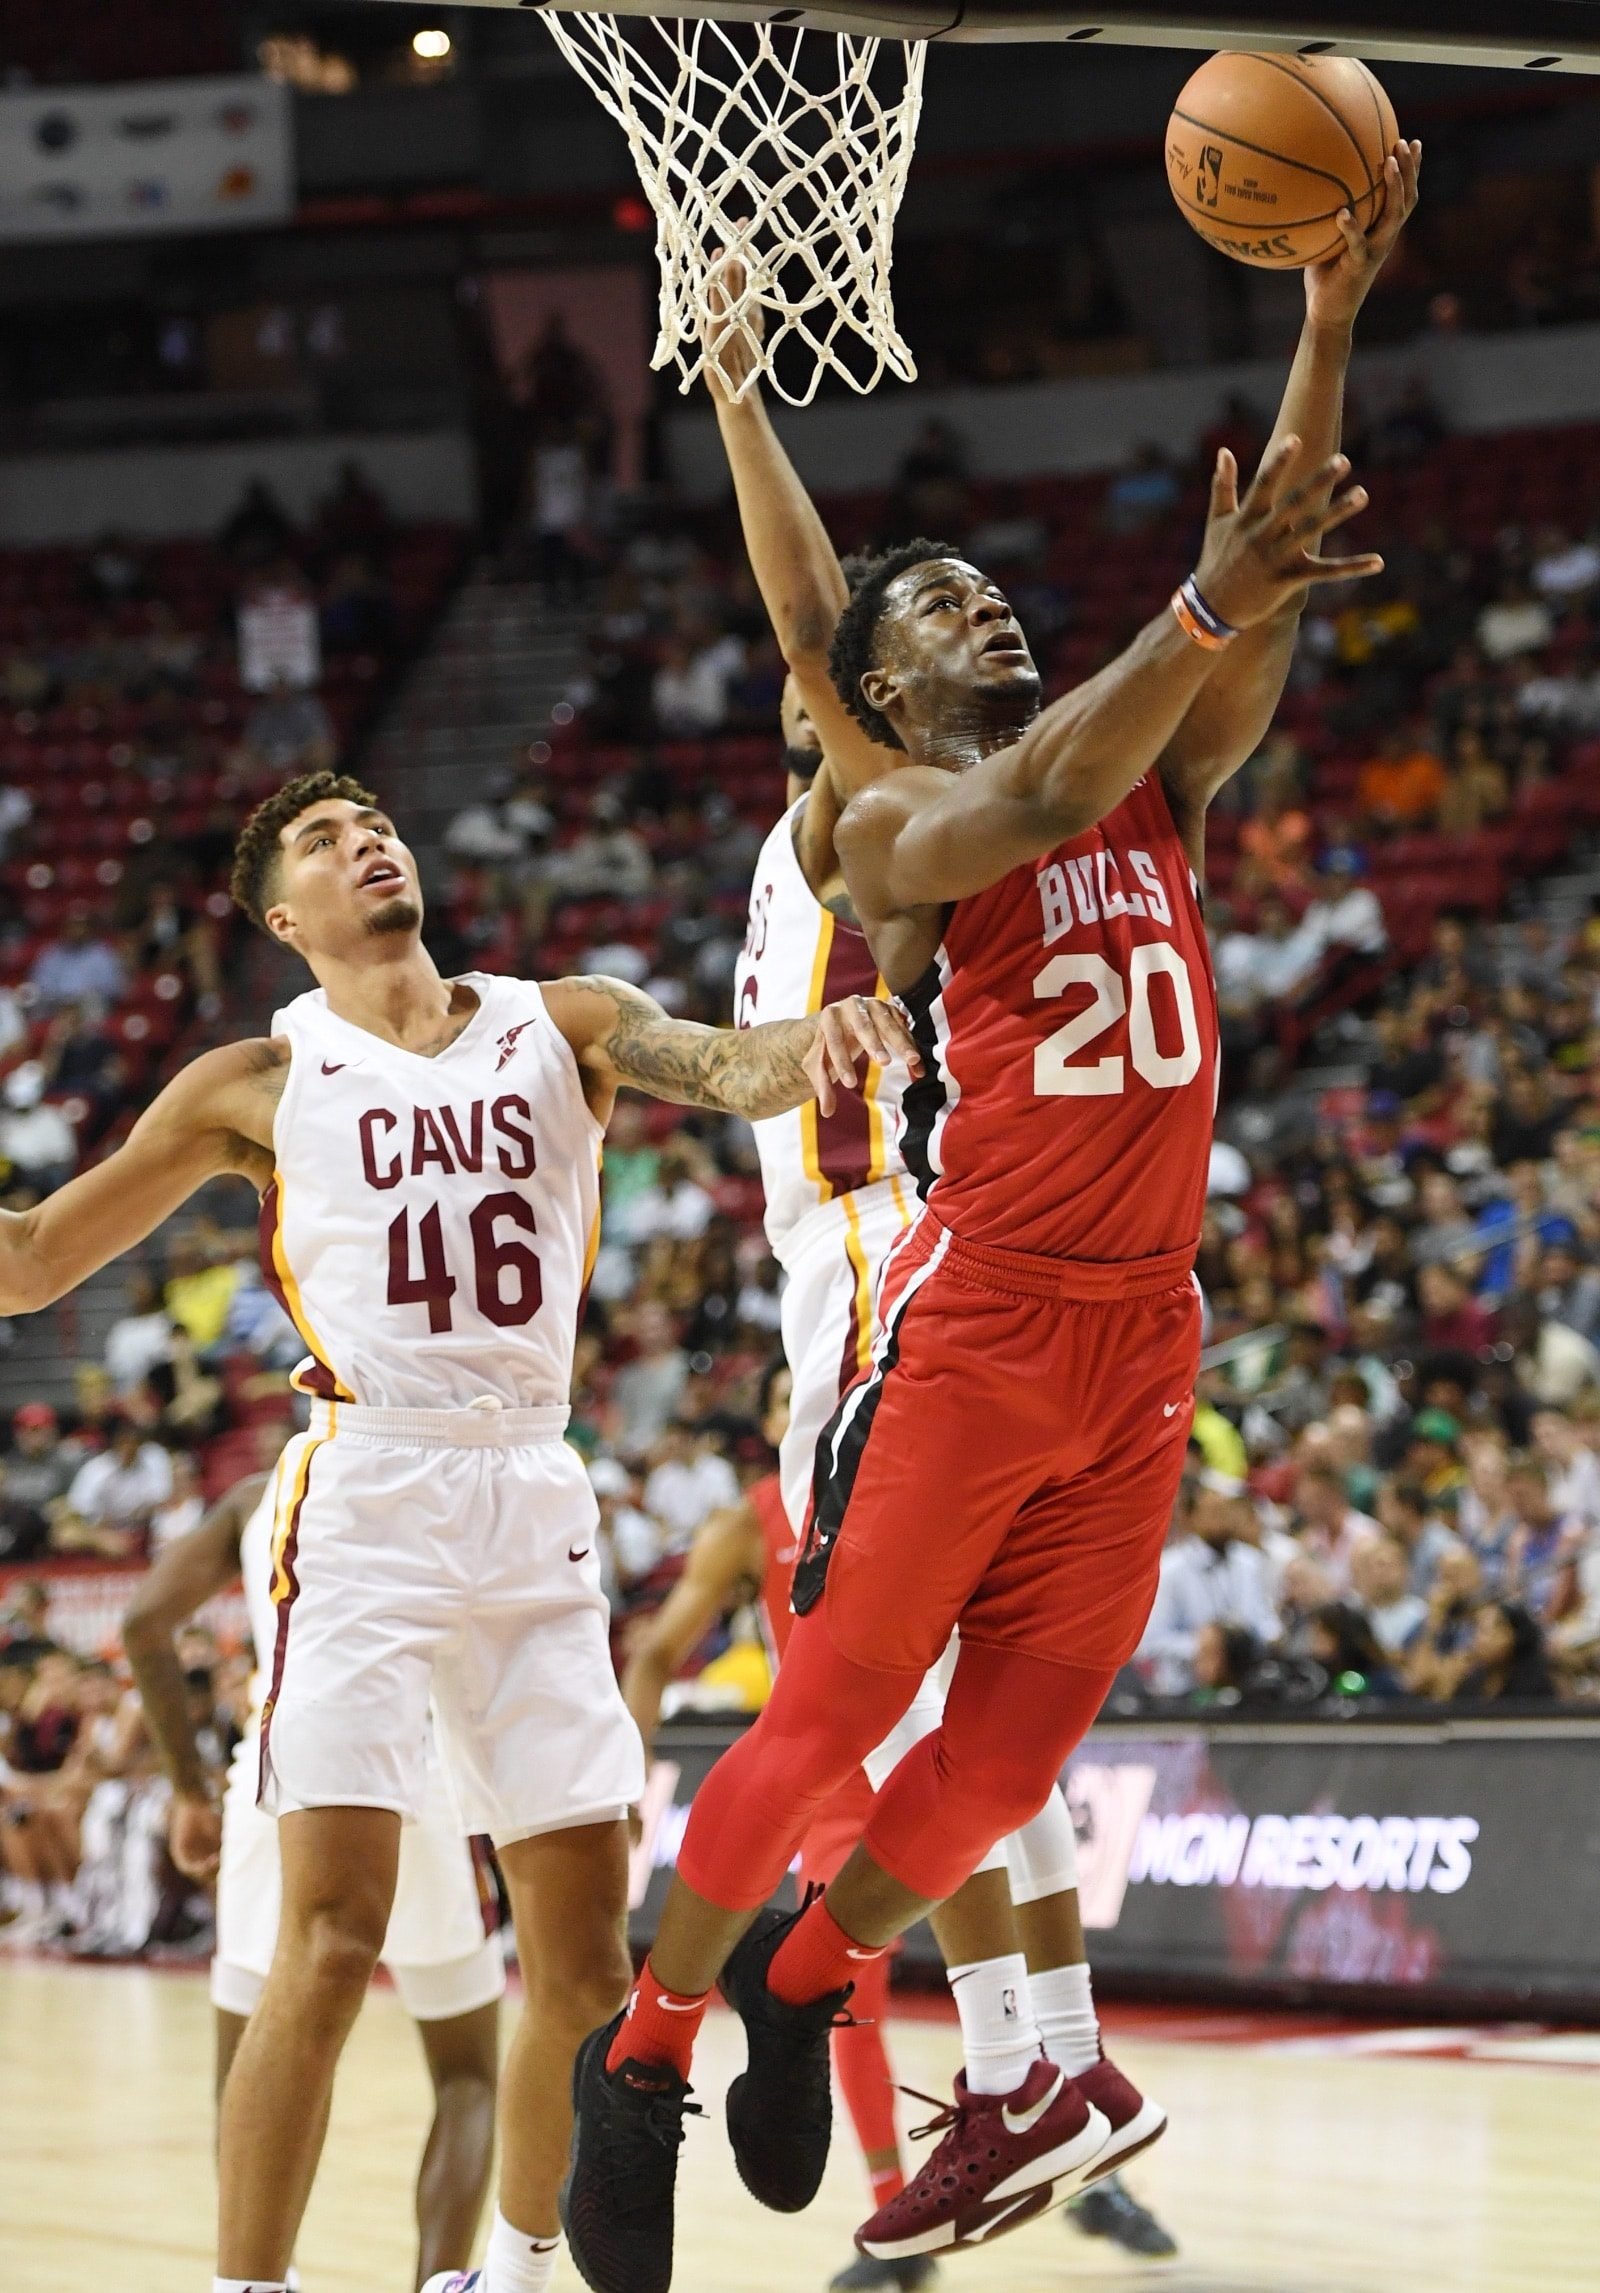 Adam Mokoka #20 of the Chicago Bulls shoots a layup ahead of Sandy Cohen III #46 of the Cleveland Cavaliers during the 2019 NBA Summer League at the Thomas & Mack Center on July 7, 2019 in Las Vegas, Nevada.